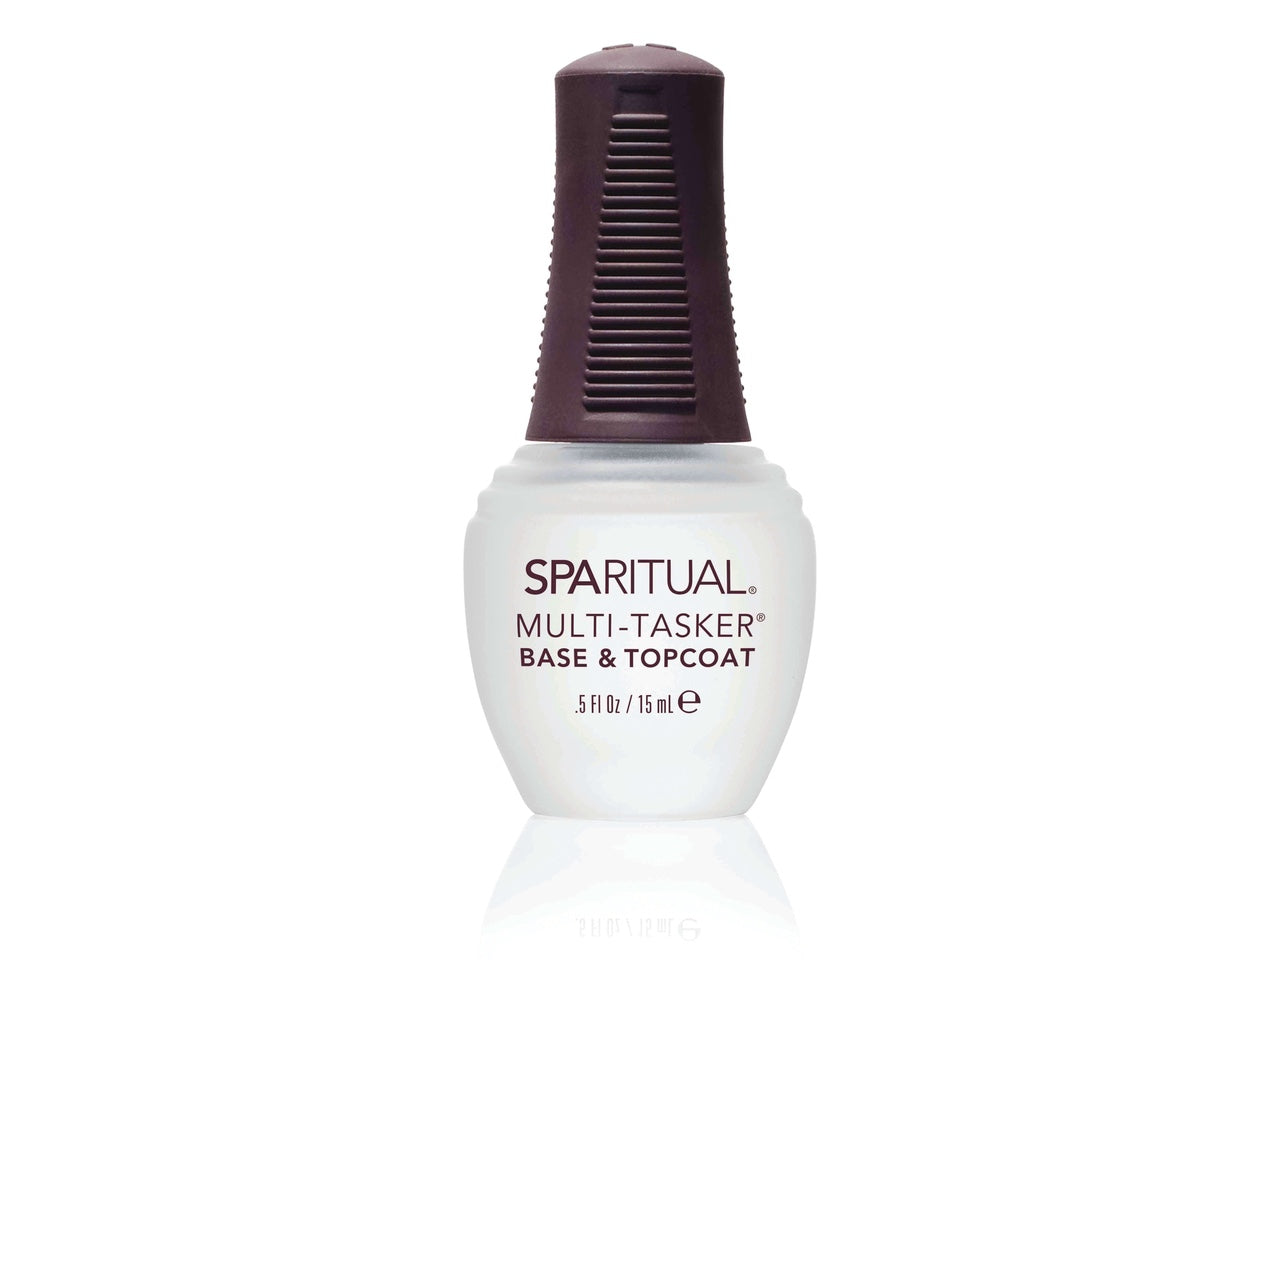 SPARITUAL Multi-Tasker® Base & Topcoat